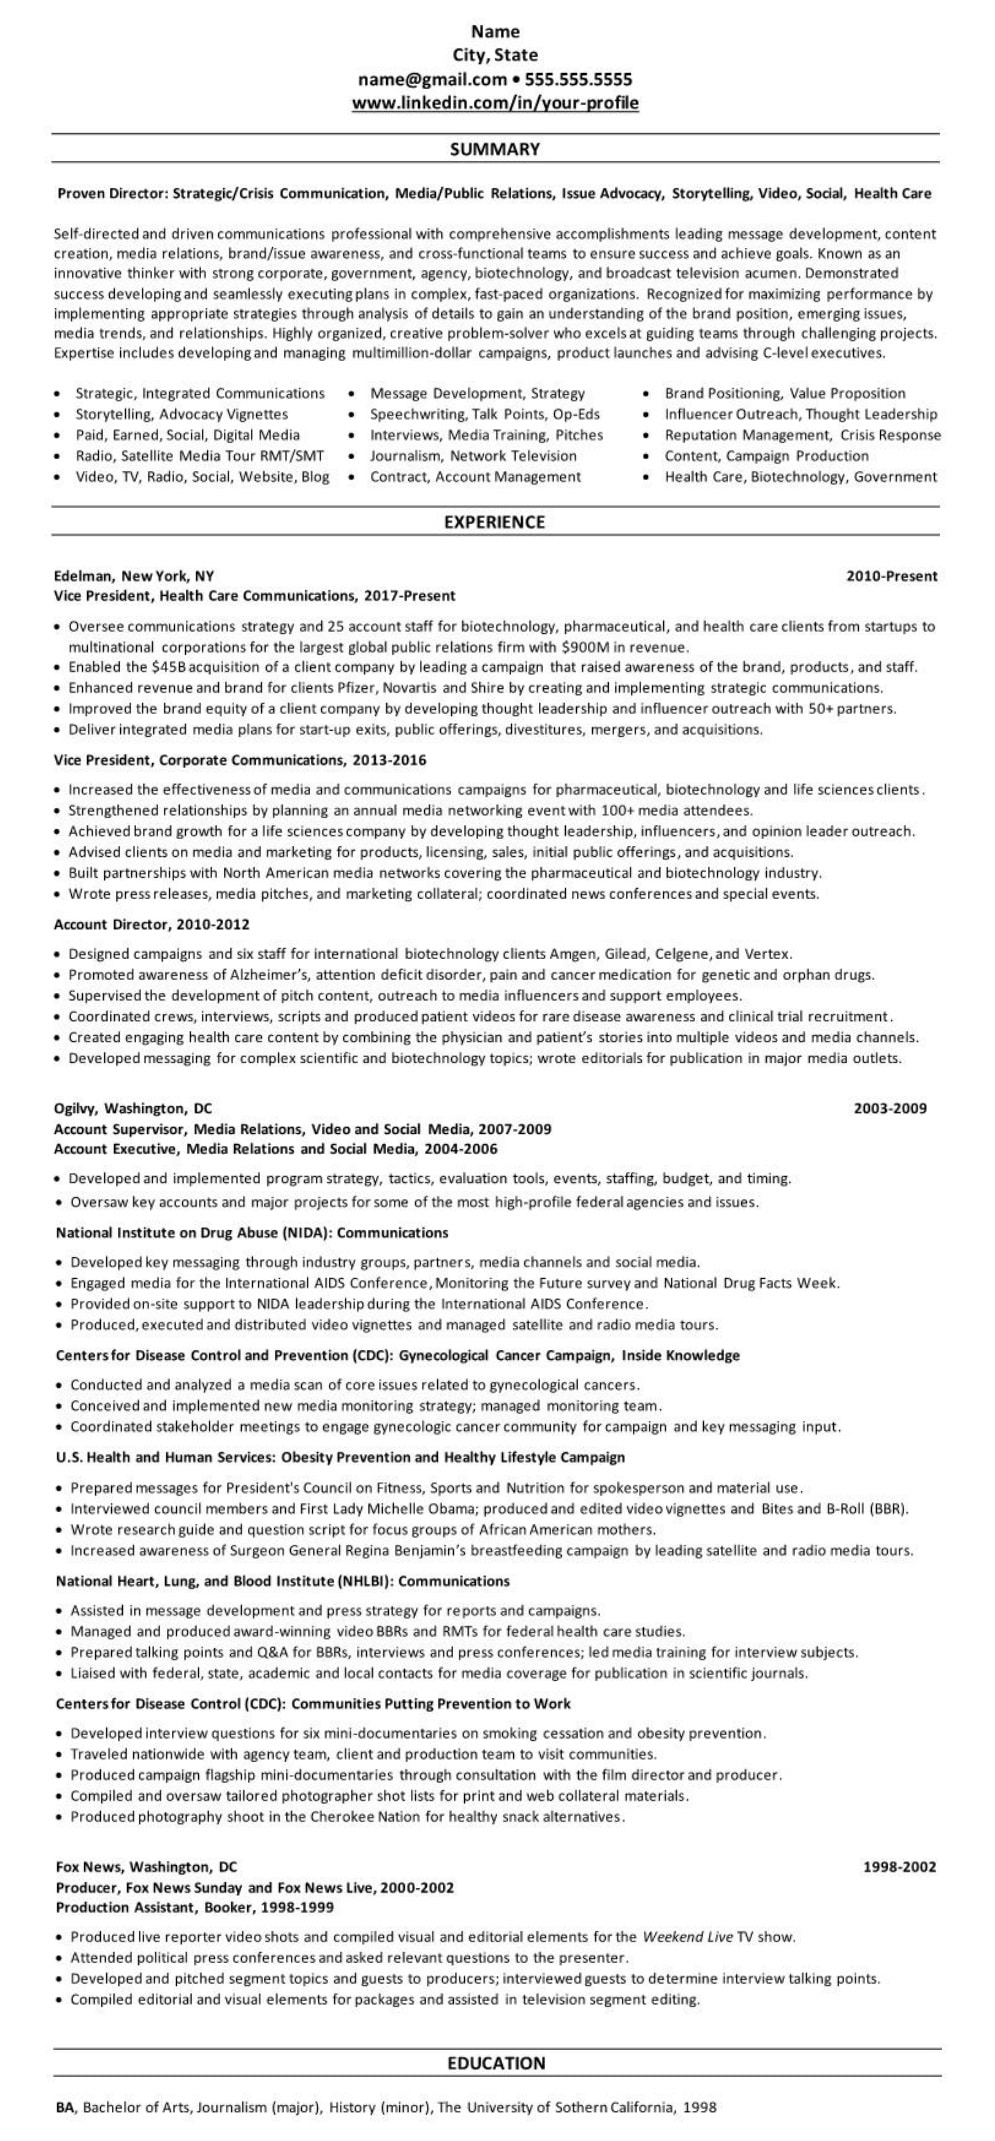 Communications Media Public Relations Resume Example 191103